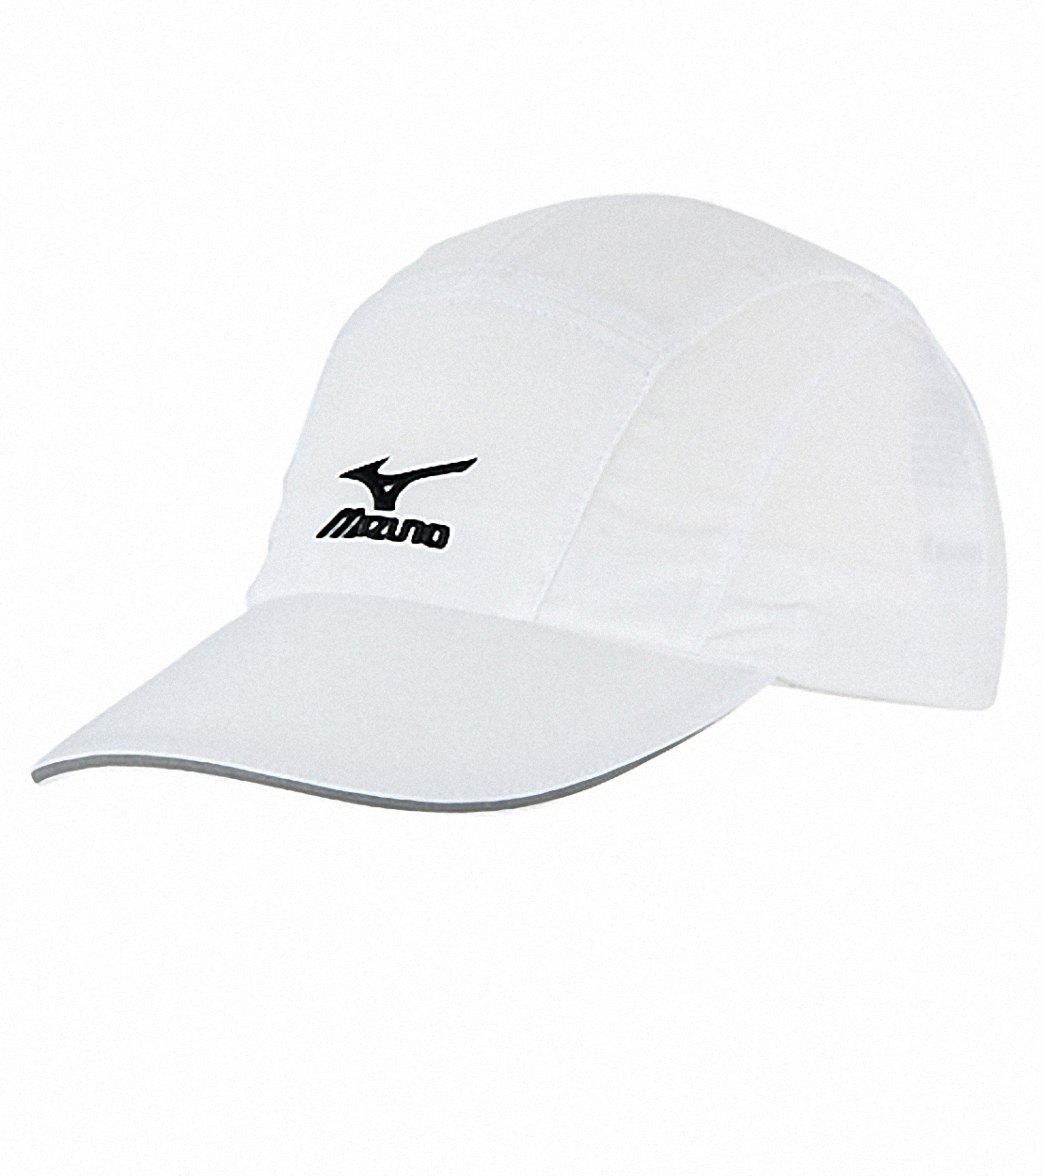 aa971a7cb5a Mizuno Reflective Running Cap at SwimOutlet.com